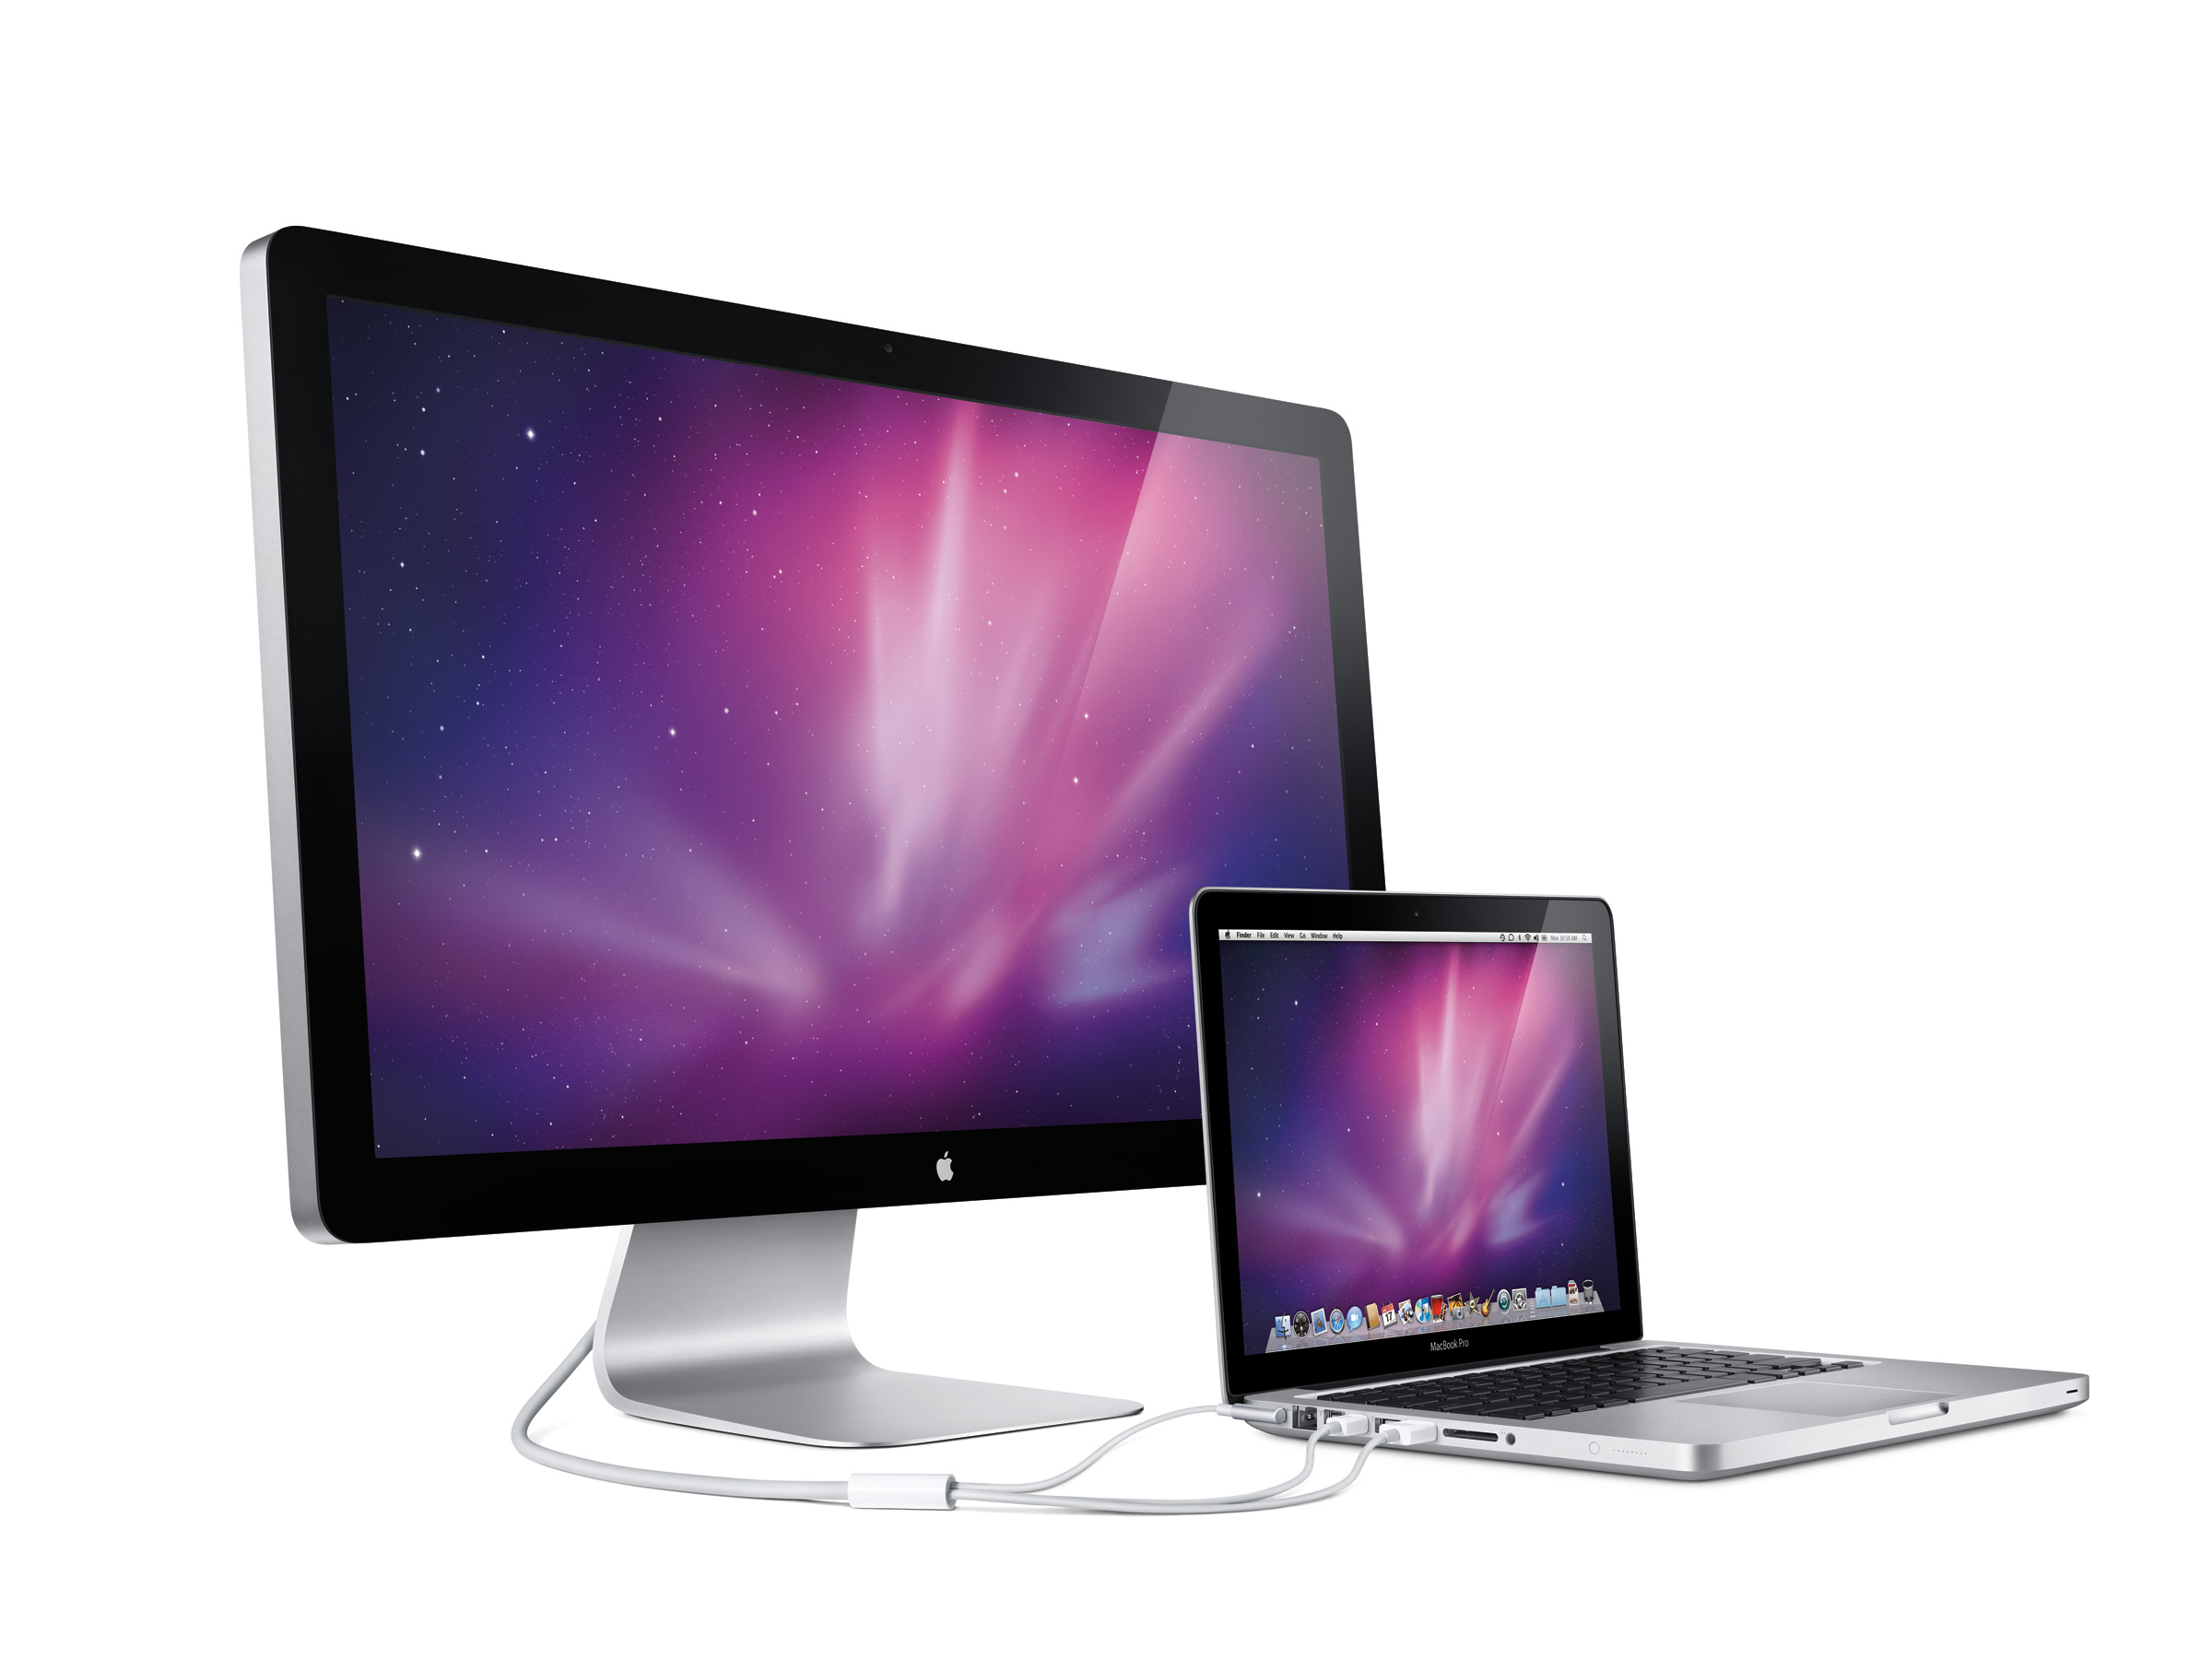 Apple reveals 27-inch LED Cinema Display